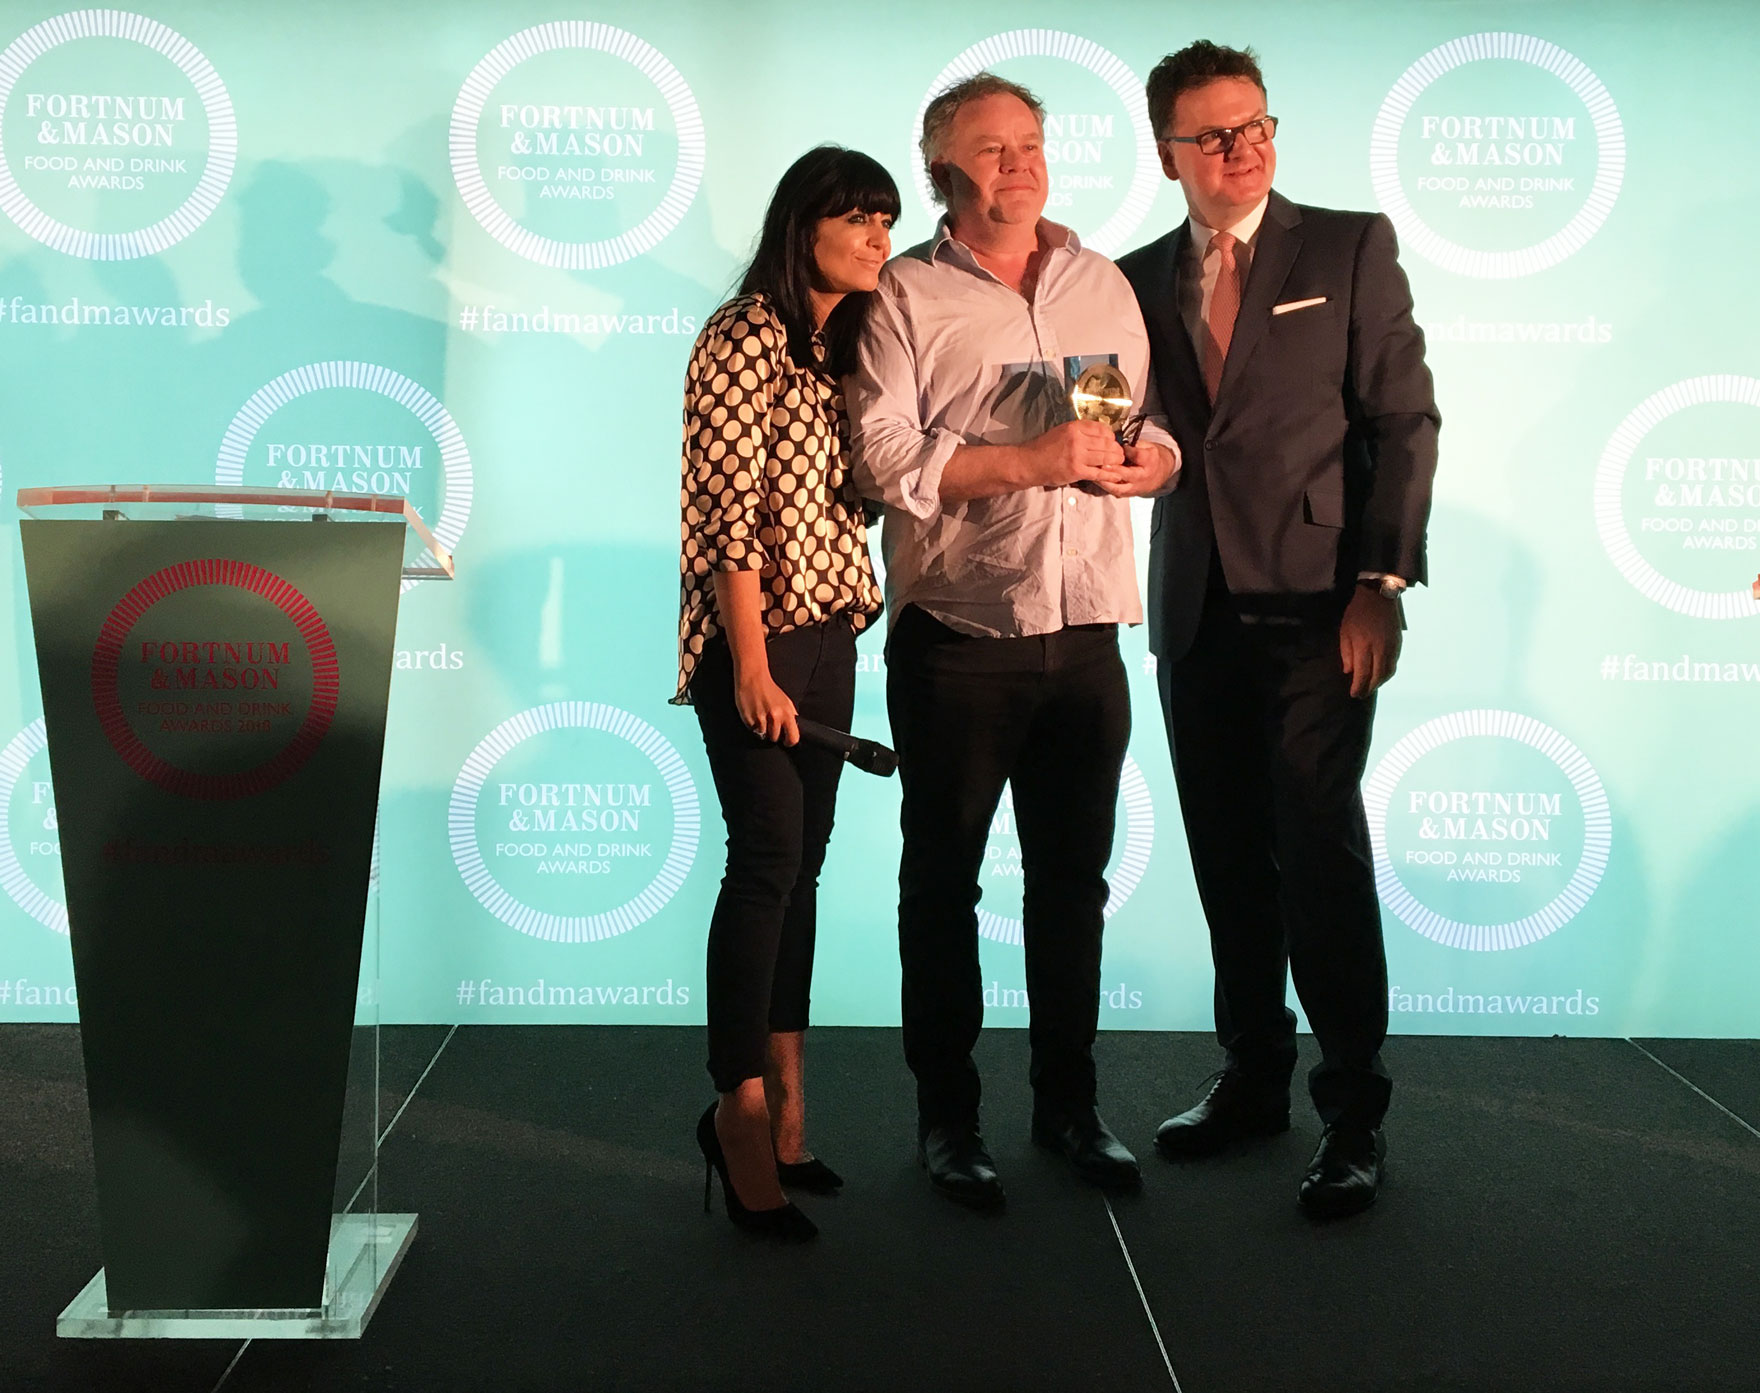 Claudia Winkleman, Stephen Harris and Fortnum & Mason CEO Ewan Venters